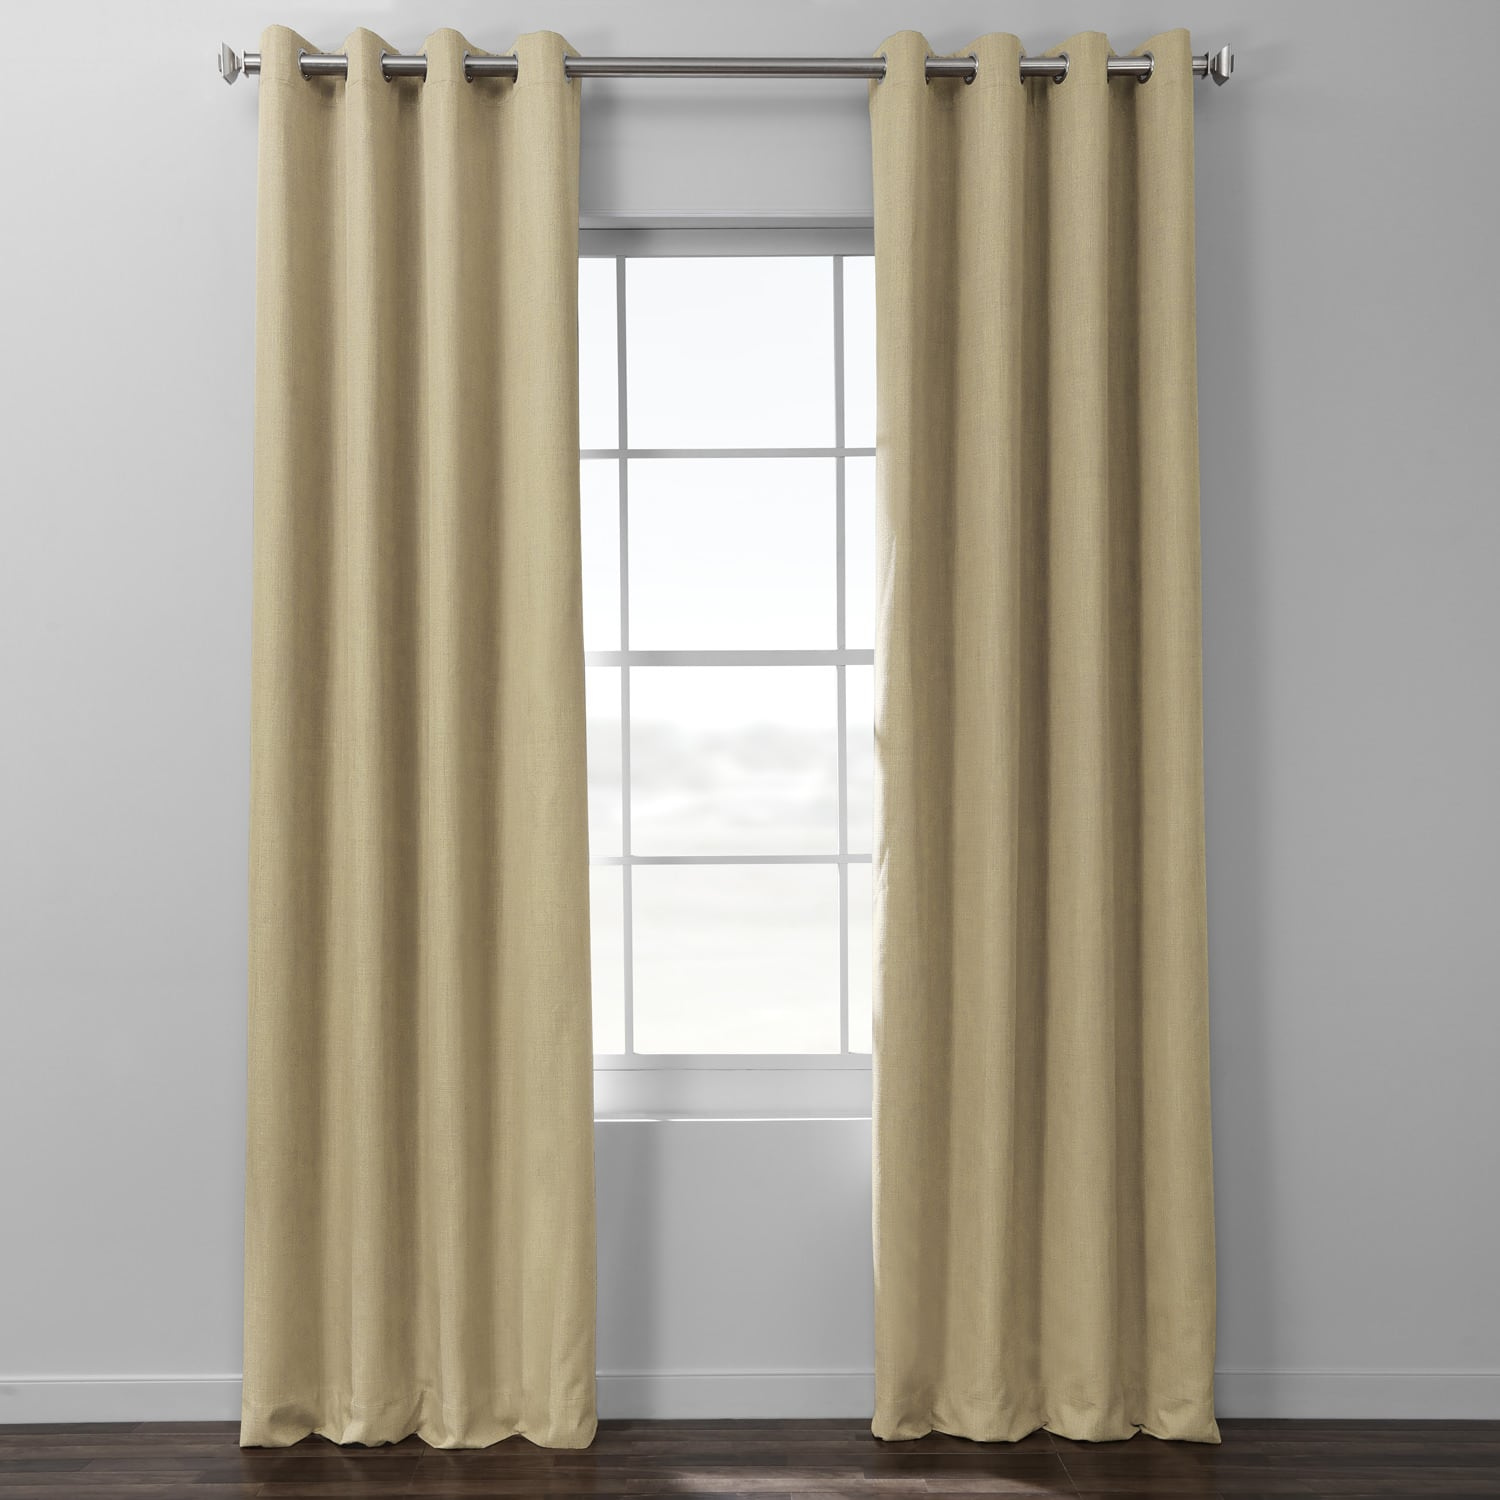 Classic Tan Italian Textured Faux Linen Hotel Blackout Grommet Curtain